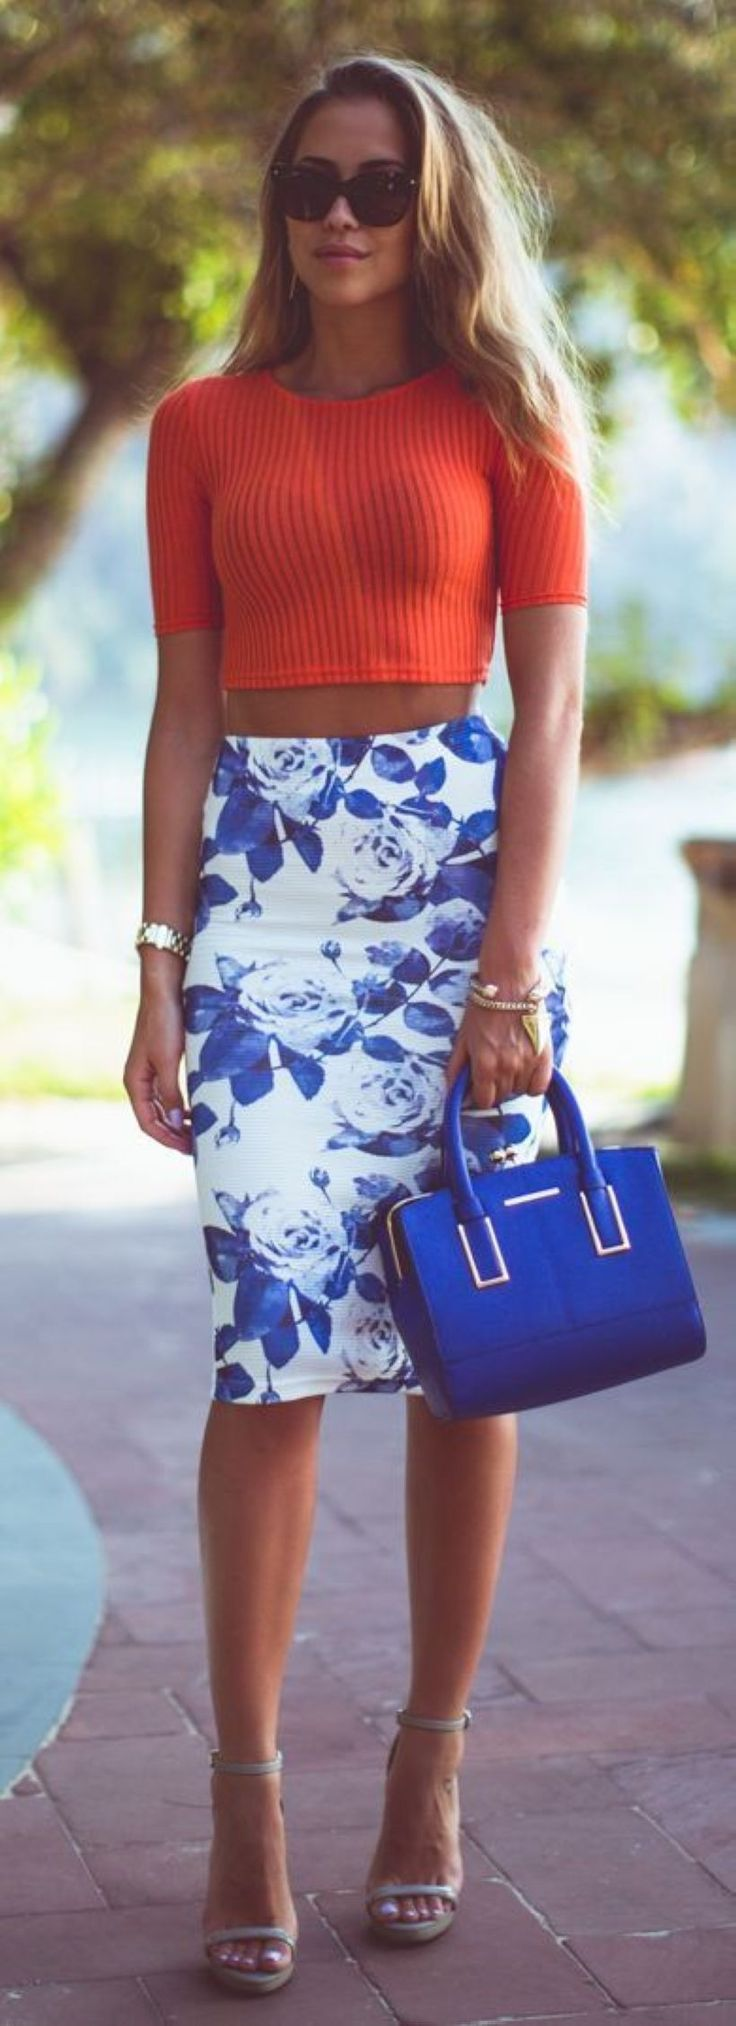 best work fashion images on pinterest classy outfits ladies